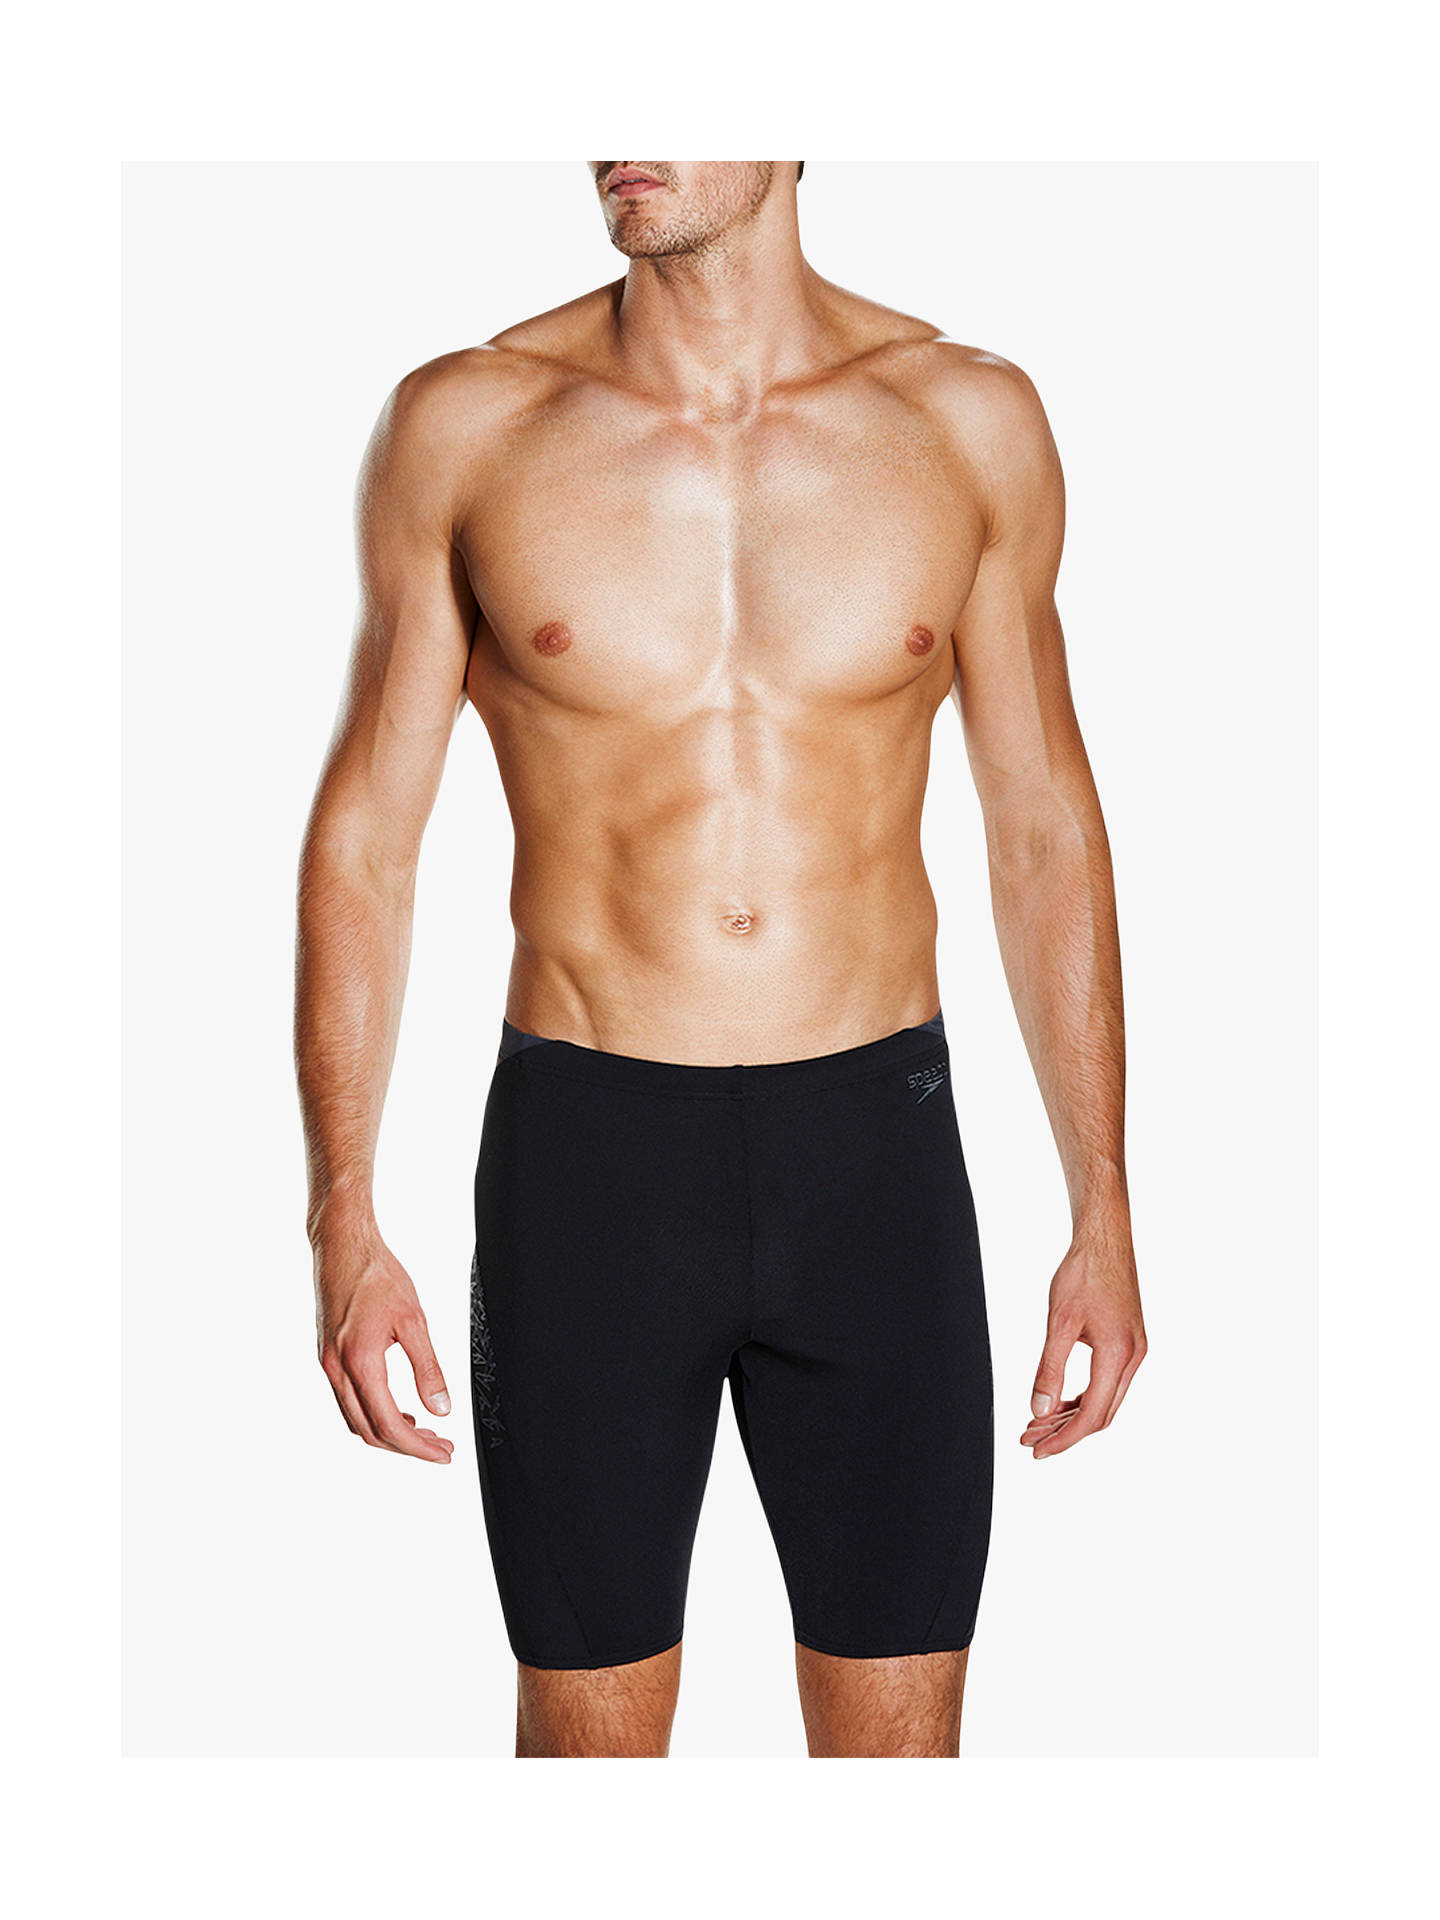 b1508c2a0a0 Buy Speedo Placement Panel Jammer Swim Shorts, Black/Oxid Grey, 30 Online  at ...